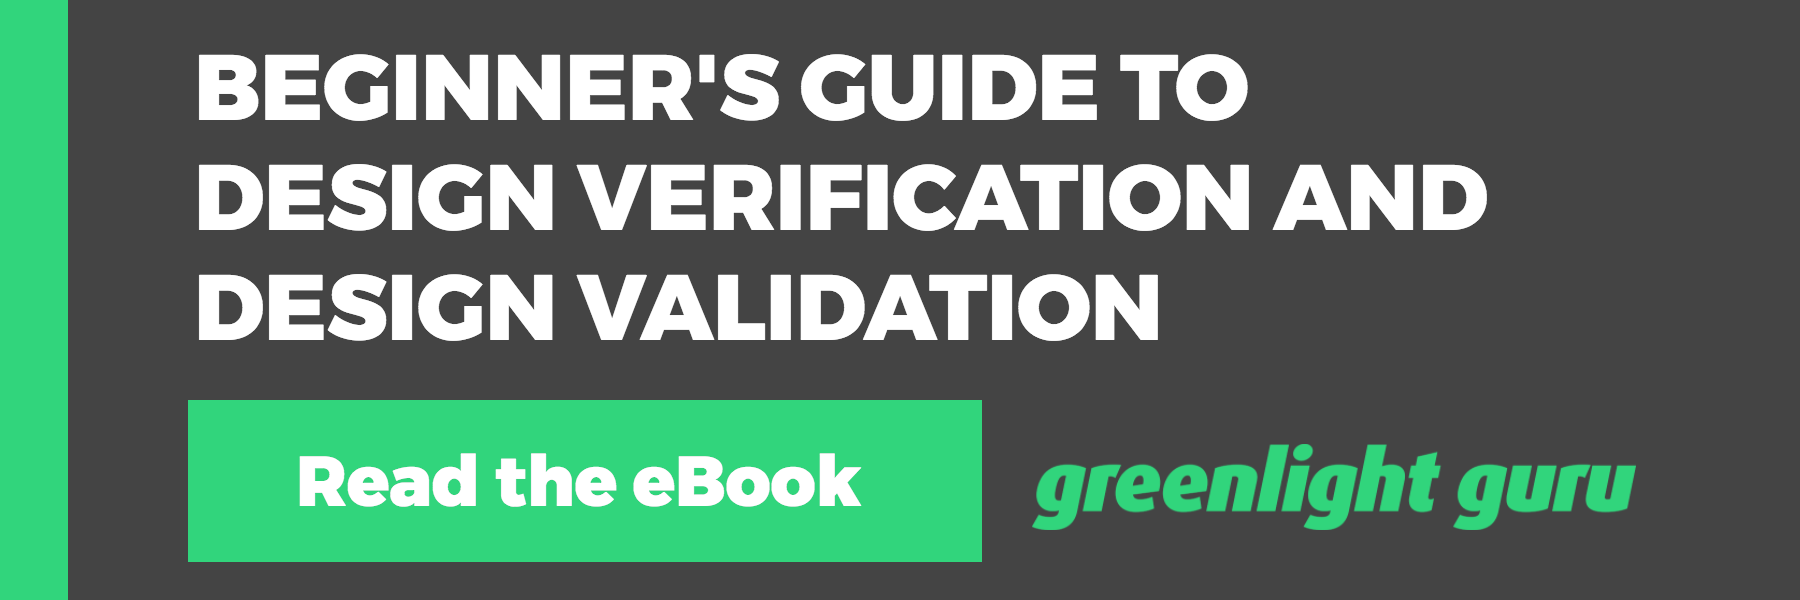 The Beginner's Guide to Design Verification and Design Validation for Medical Devices - Featured Image